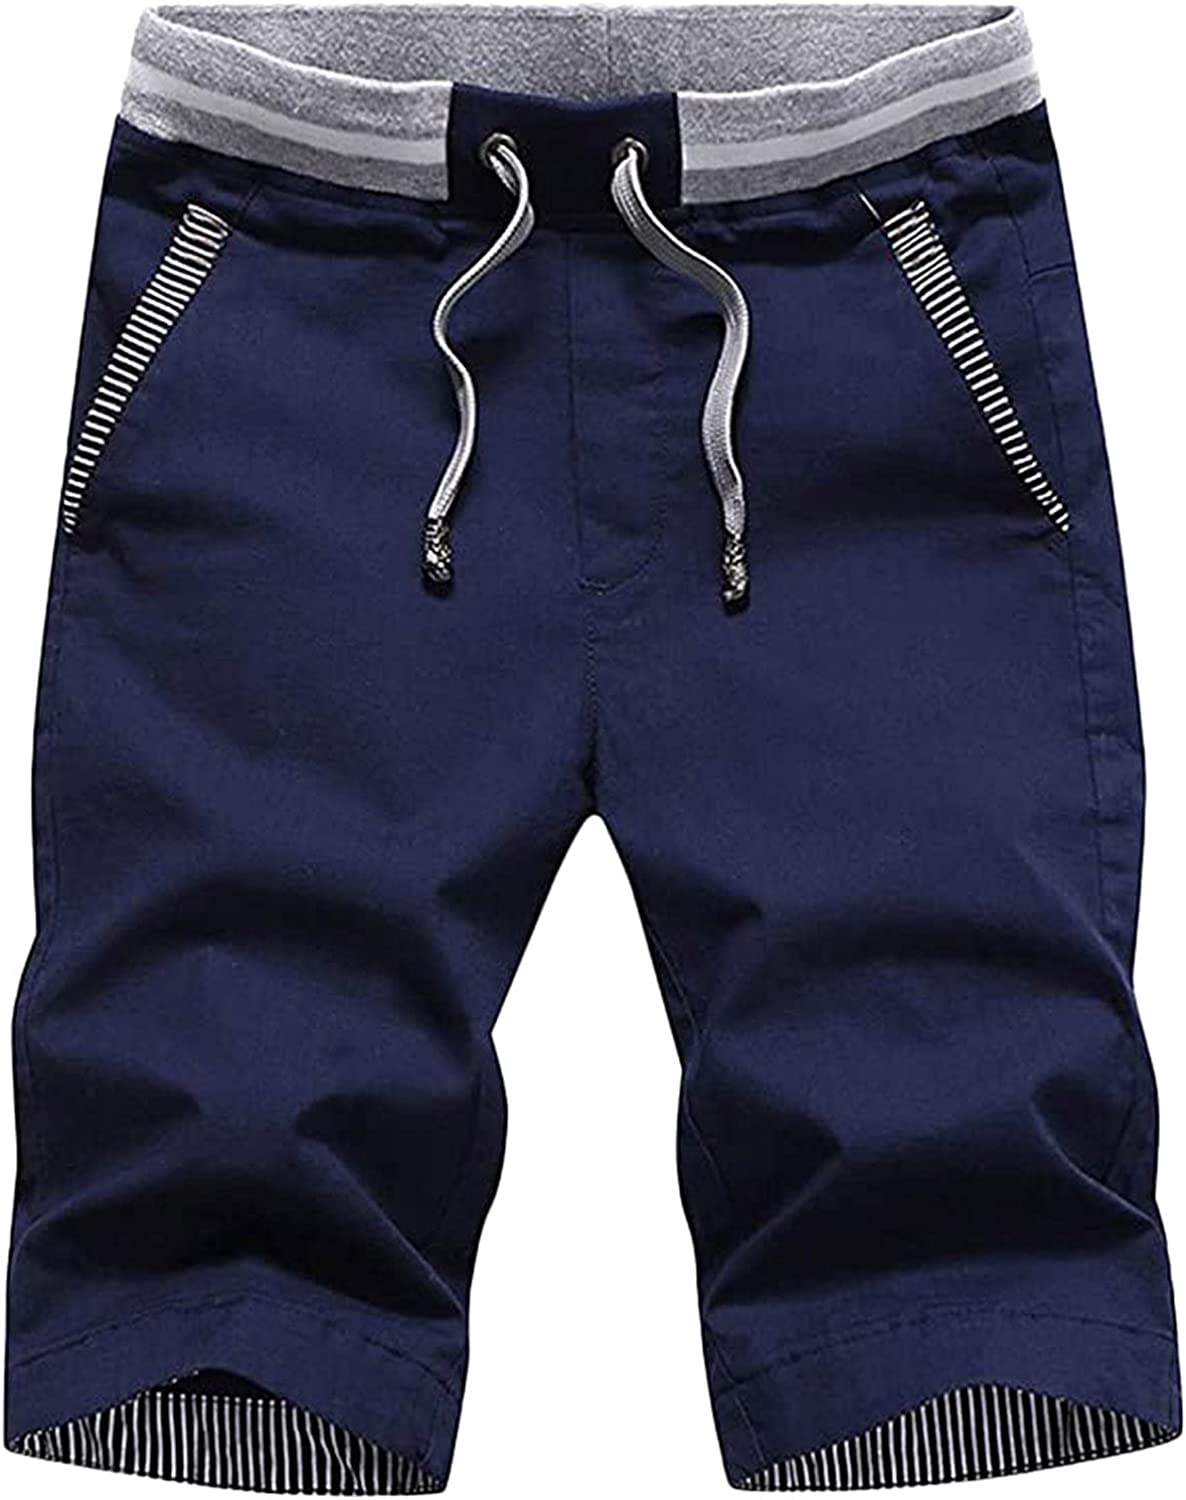 FUNEY Men's Cargo Shorts Elastic Waist Drawstring Cotton Casual Comfy Workout Outdoor Lightweight Shorts with Multi Pockets